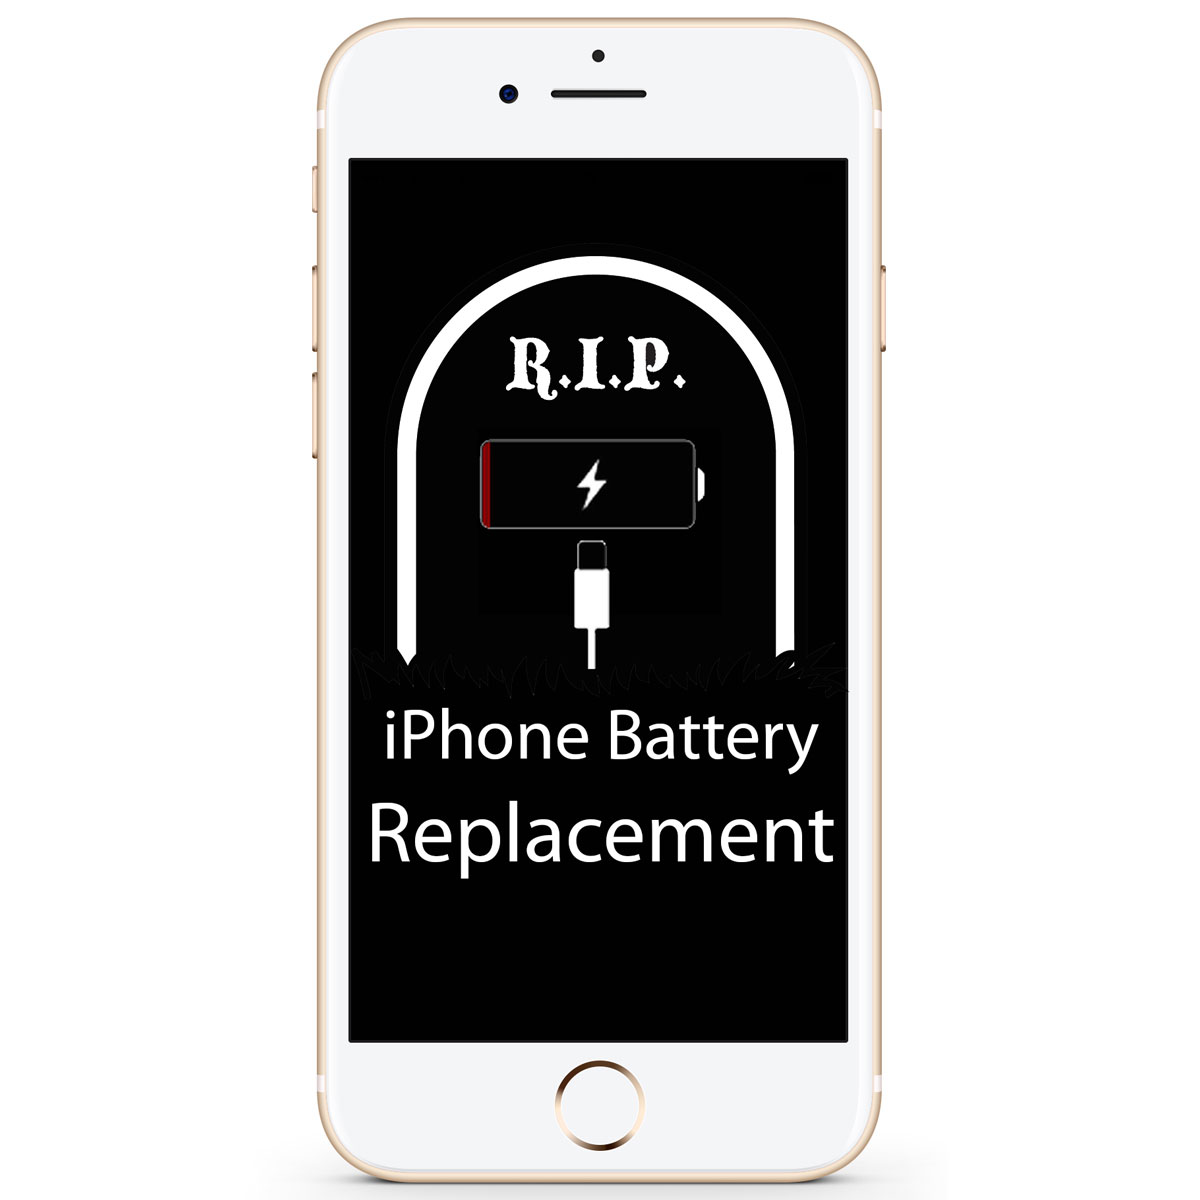 Apple iPhone 4 Battery Replacement Service